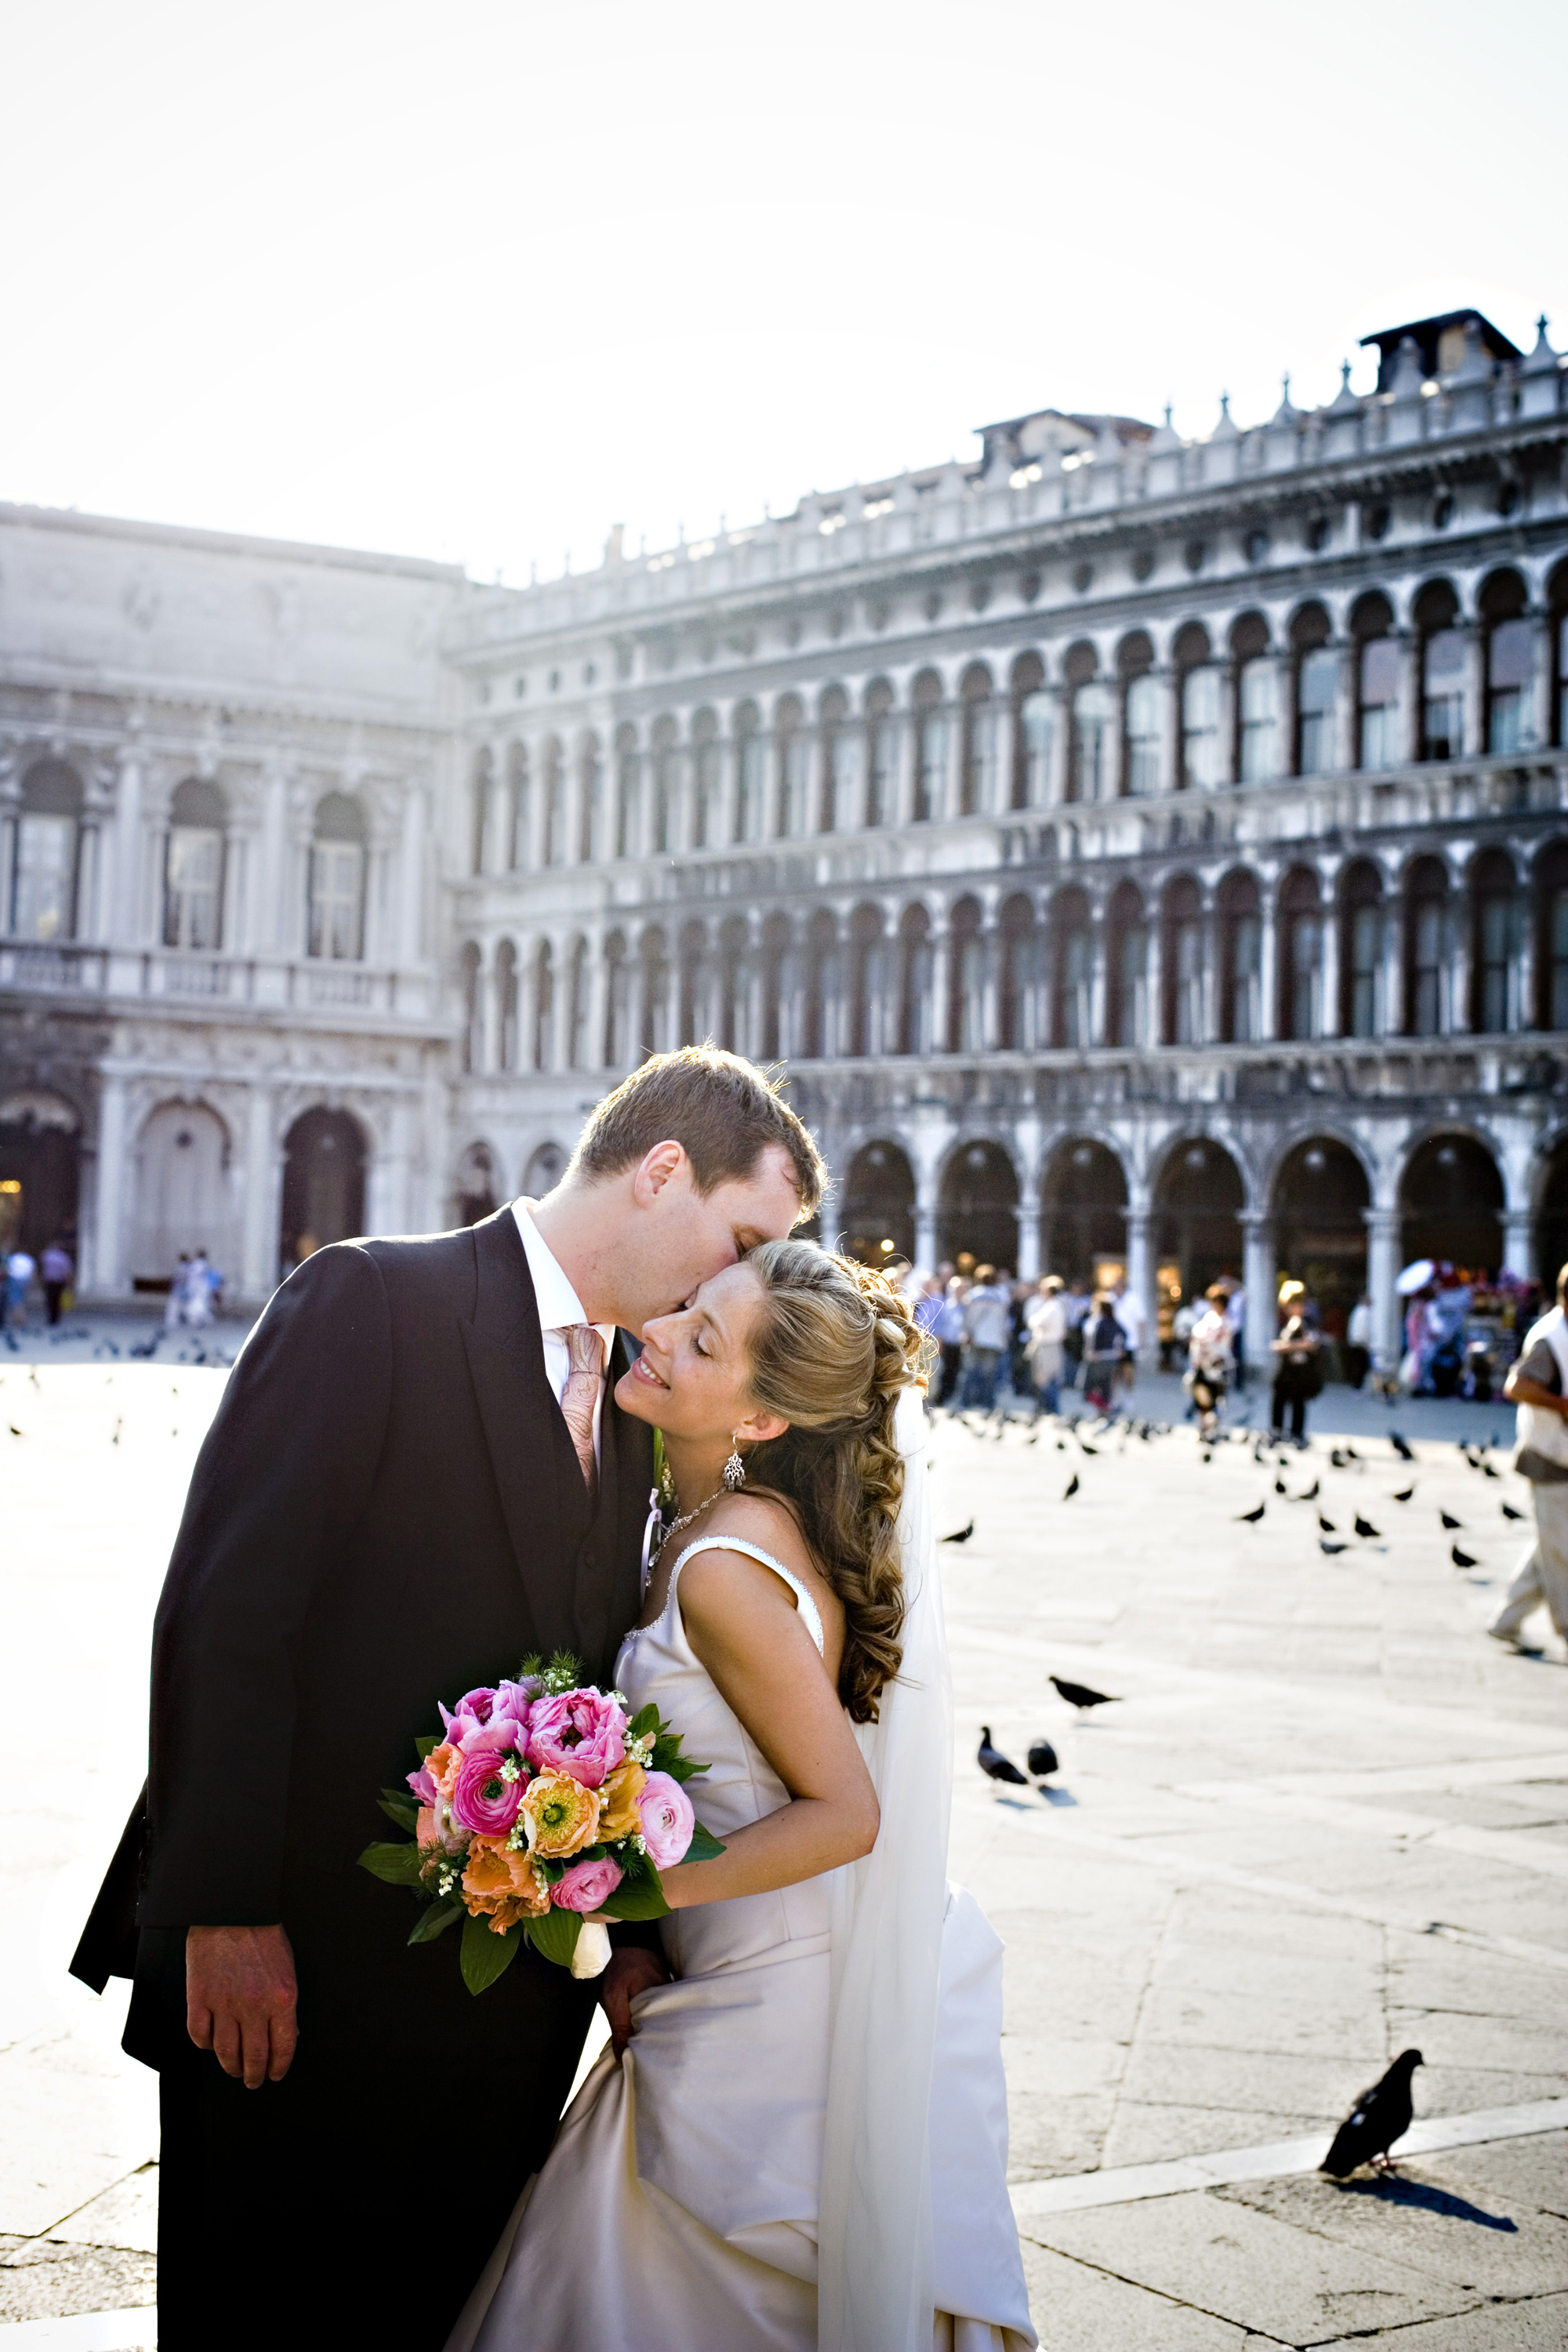 Destinations, Europe, Wedding, Destination, Couple, italy, San, Sc, Charleston, Corbin gurkin photography, Marco, Venice